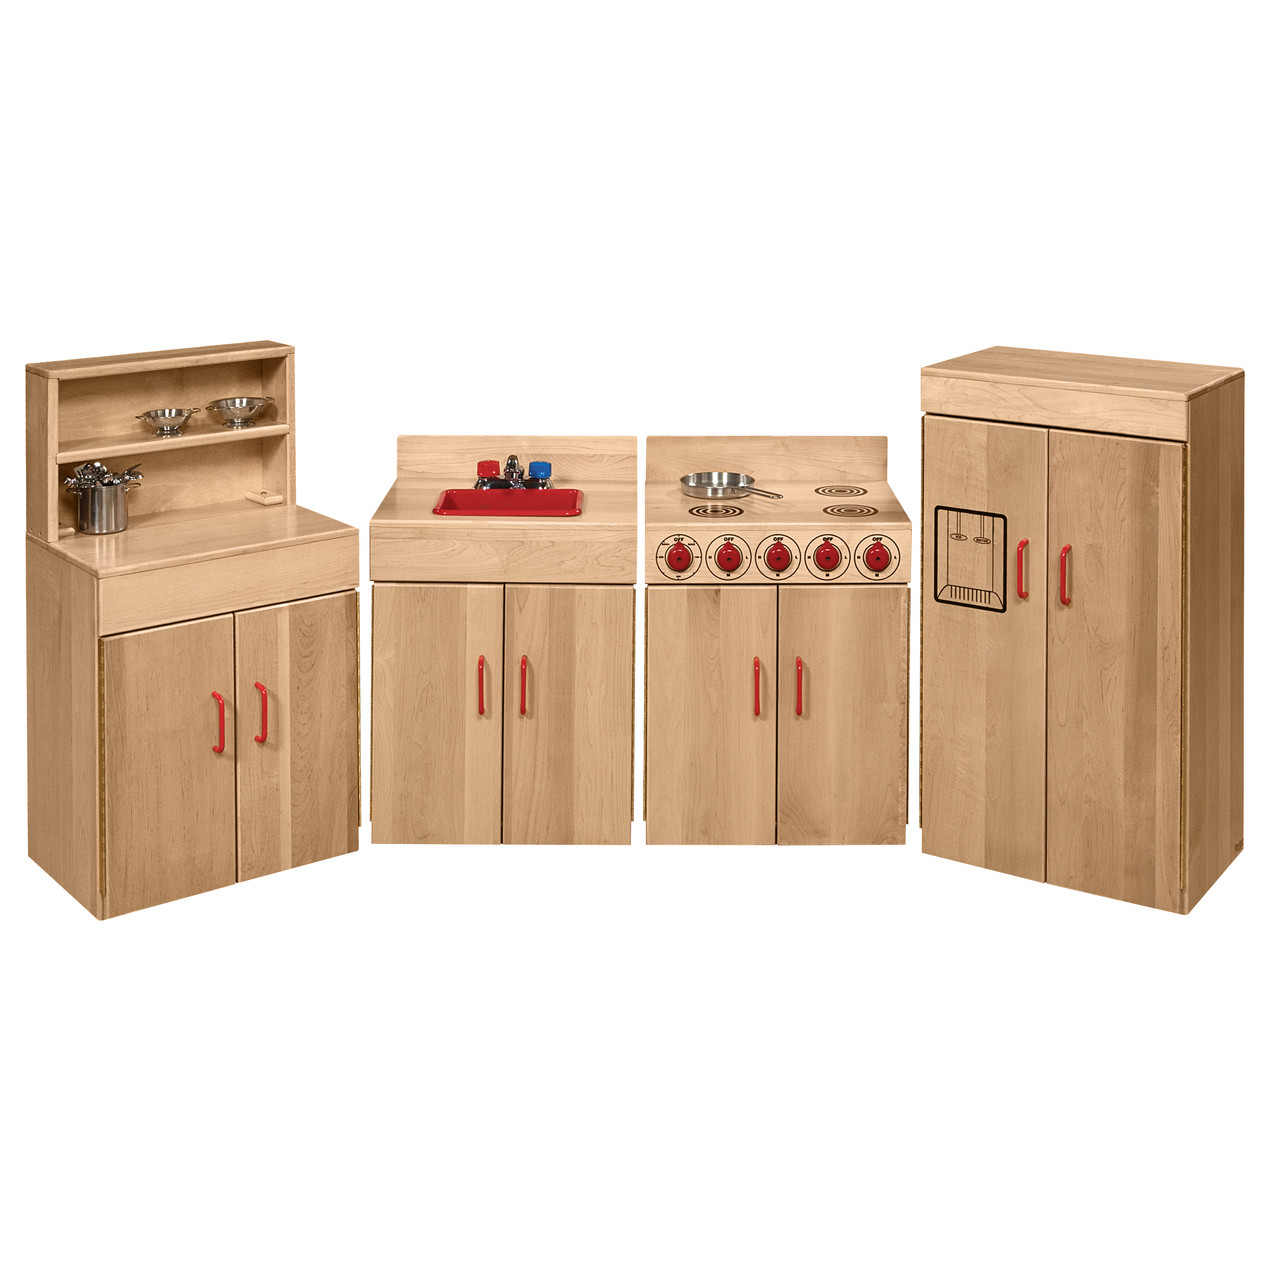 Children Wooden Play Kitchen Set Pretend Role Cook Learning ...